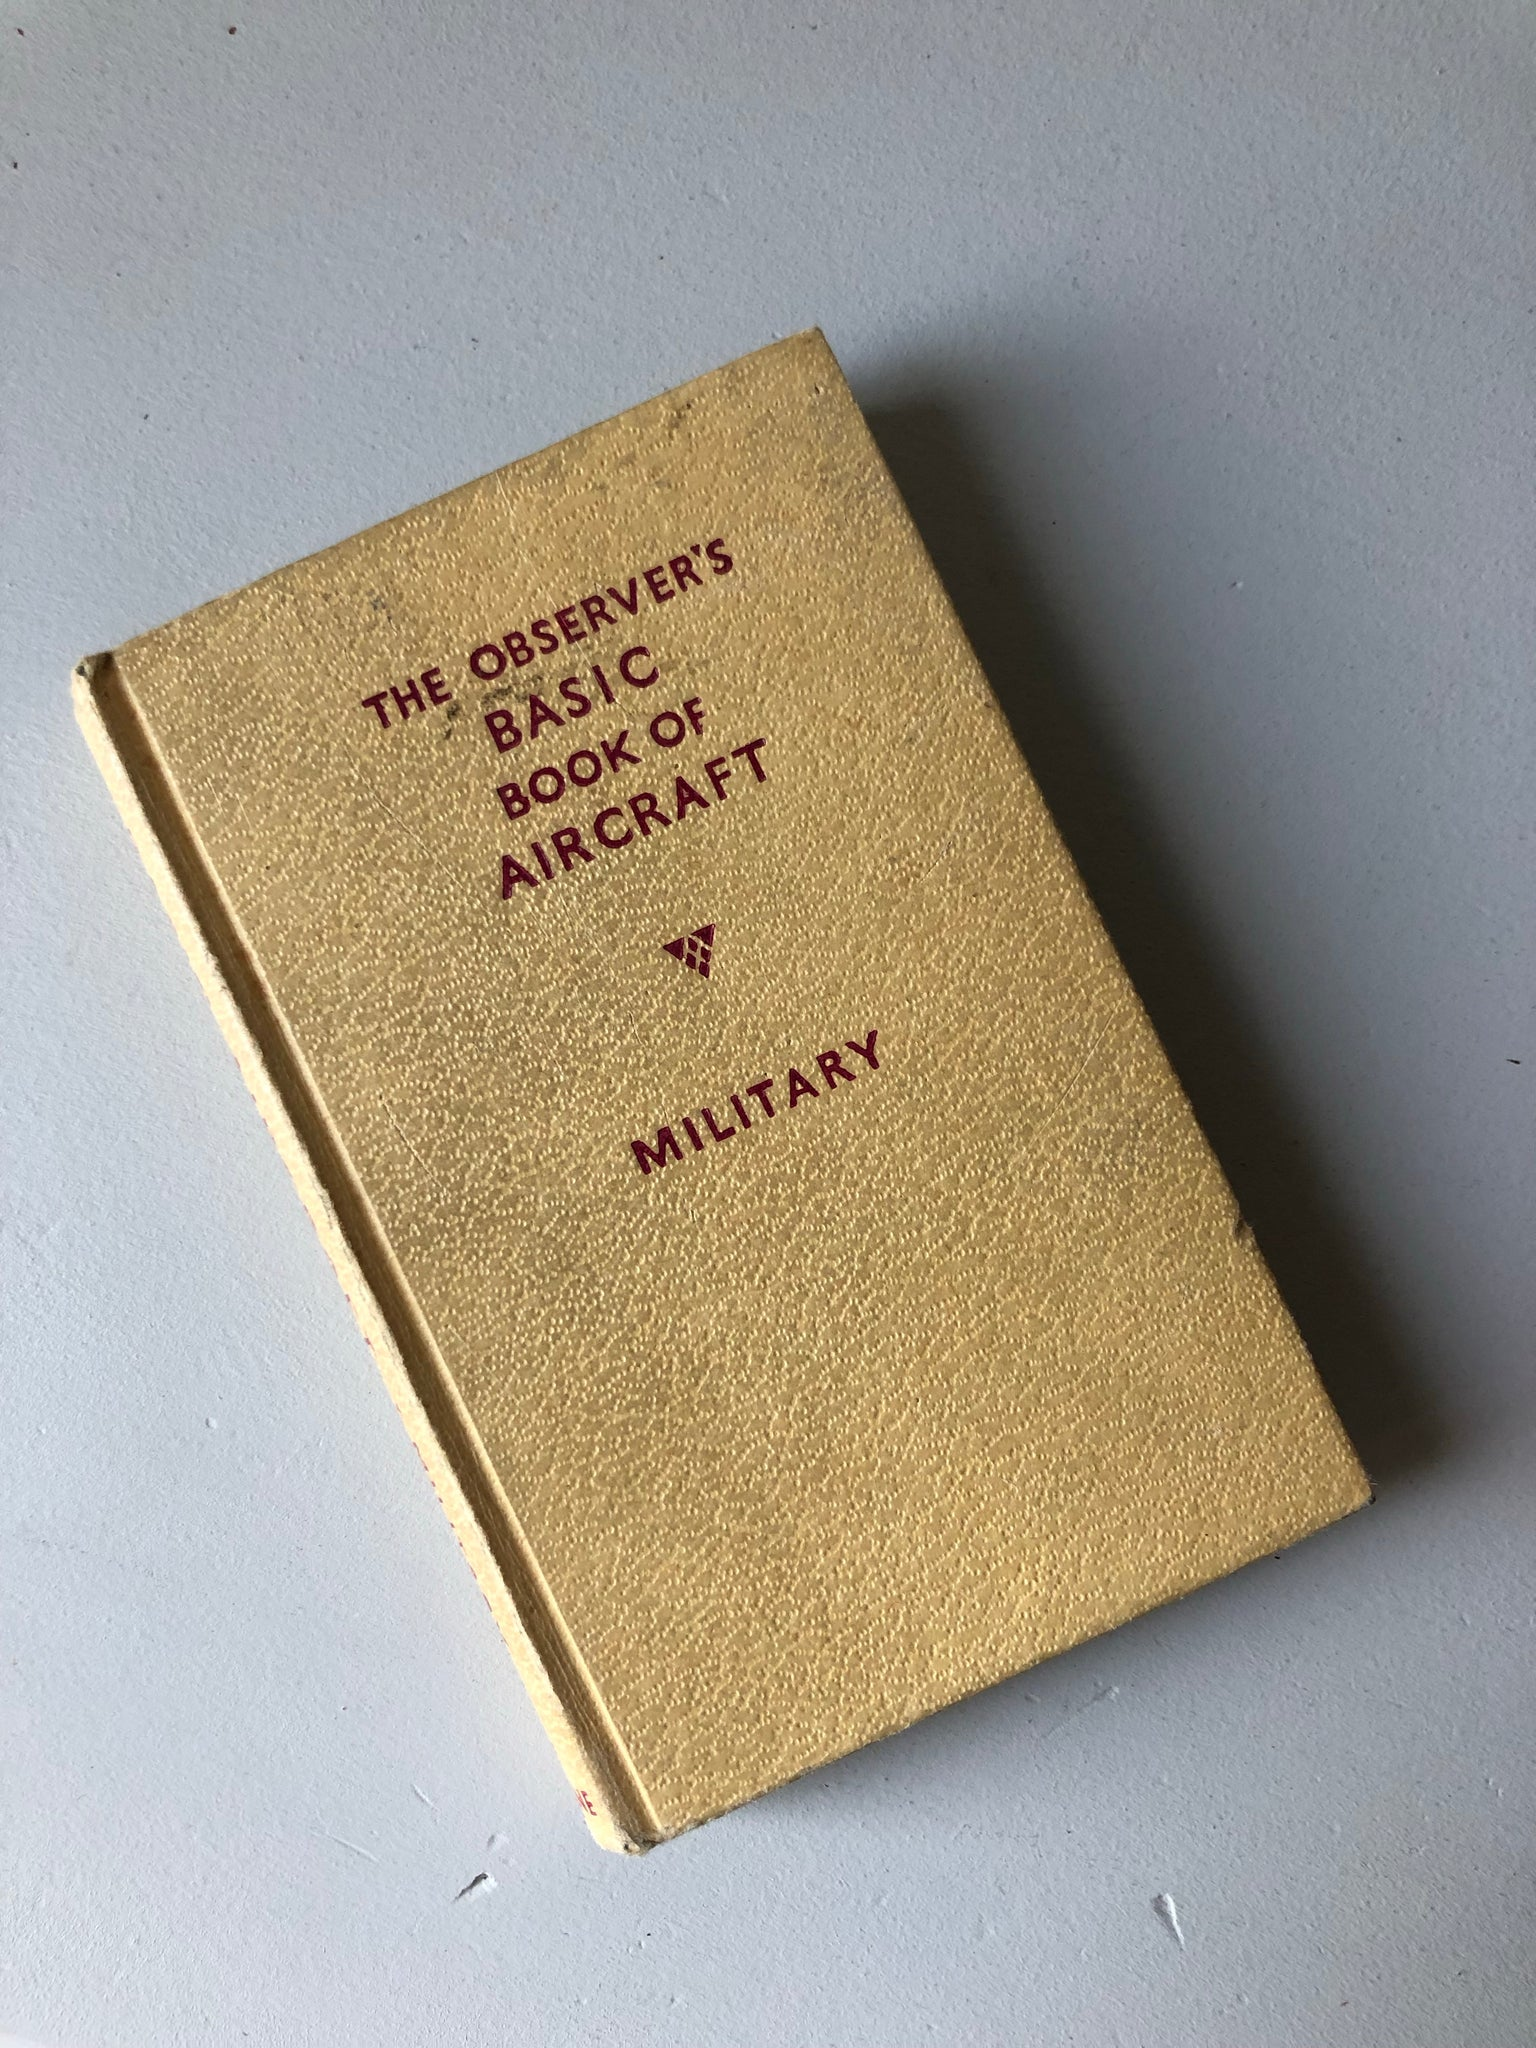 Observer Book of Military Aircraft